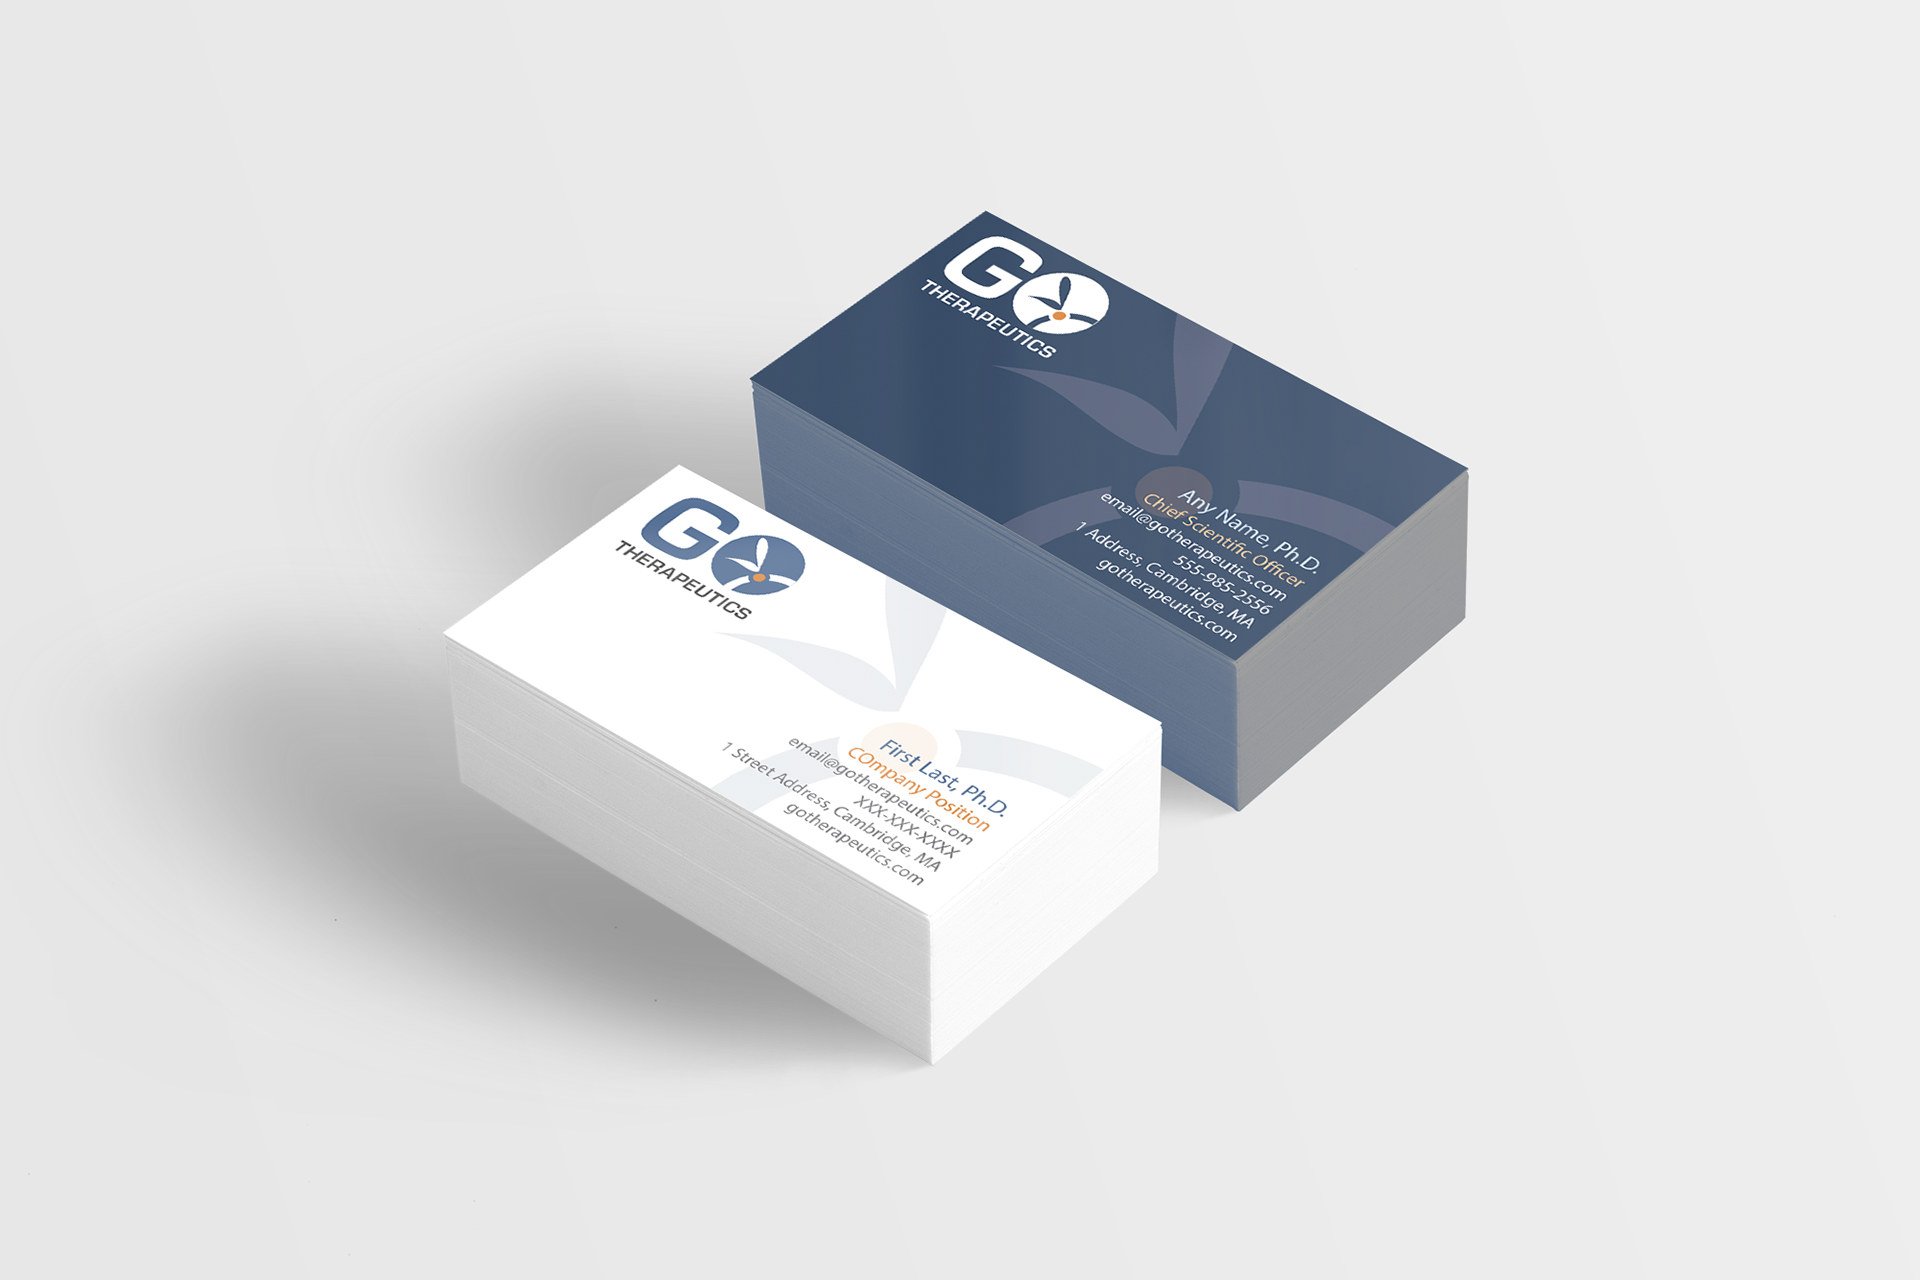 Diana Saville - GO Therapeutics Logo and Business Cards